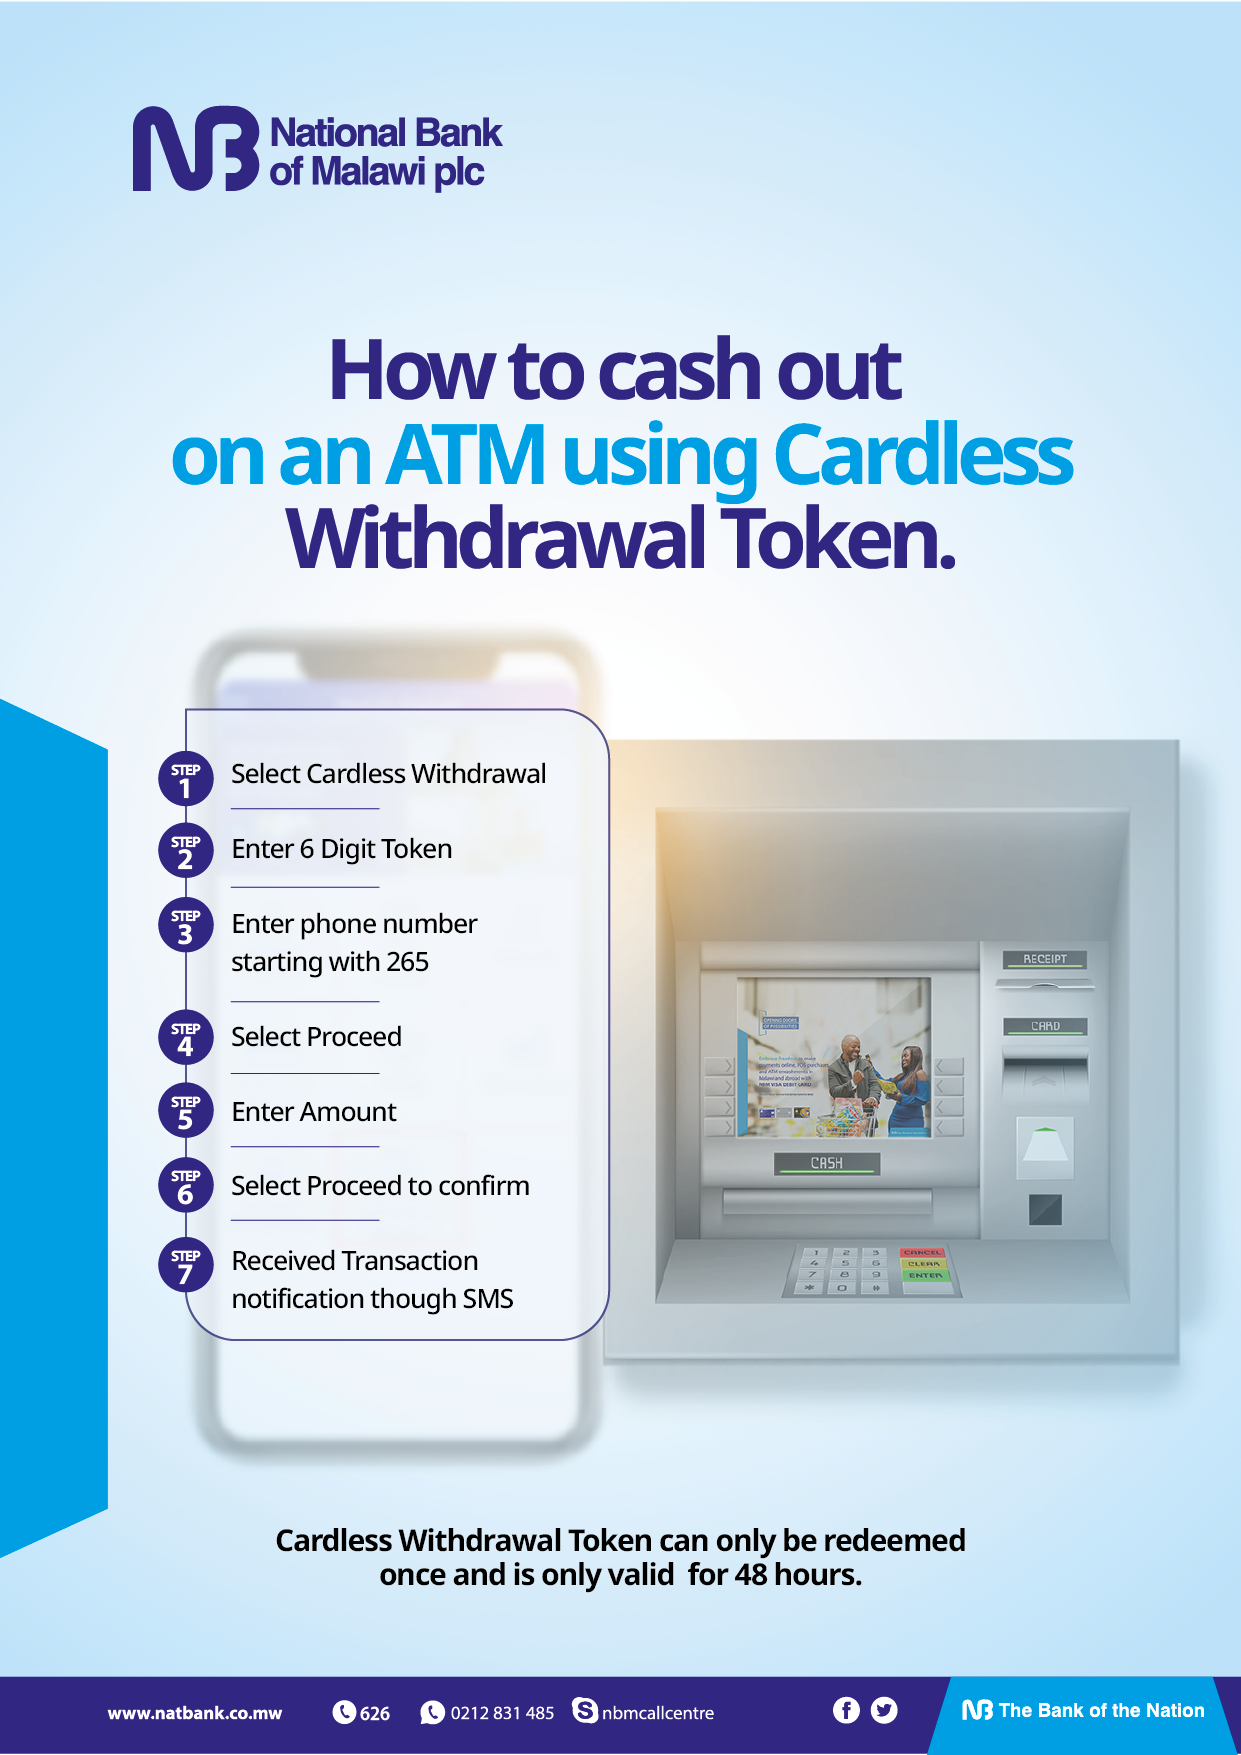 How to cash out on an ATM using Cardless Withdrawal Token